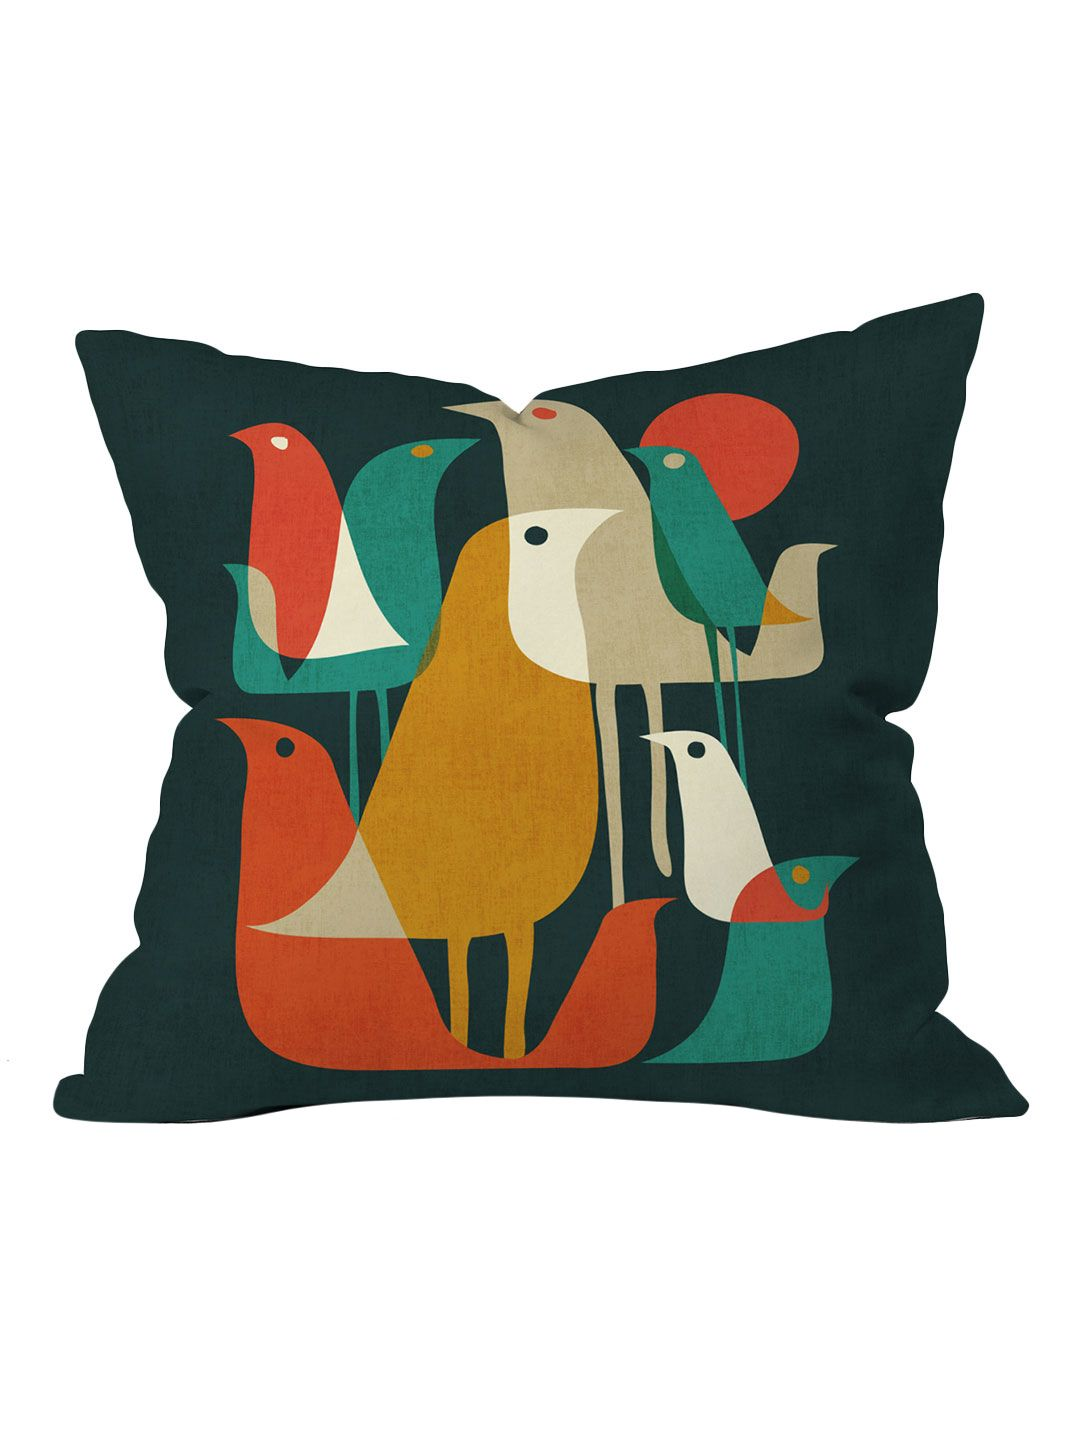 Flock Of Bird Outdoor Throw Pillow By Deny Designs At Gilt